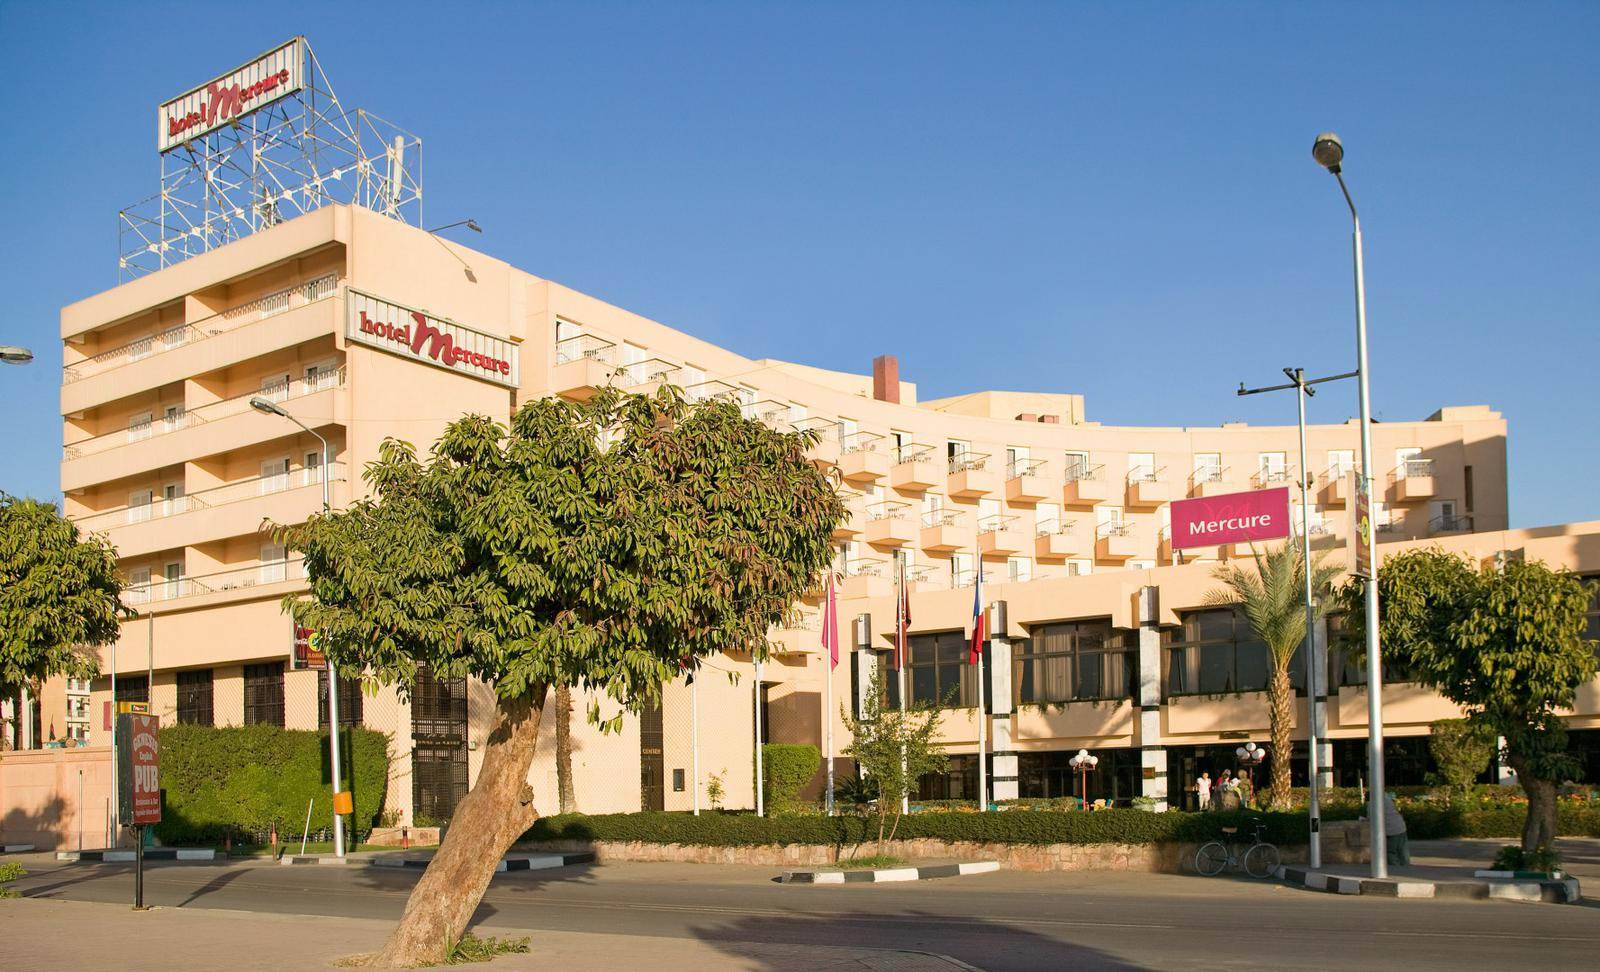 Mercure Hotel Luxor am Nil